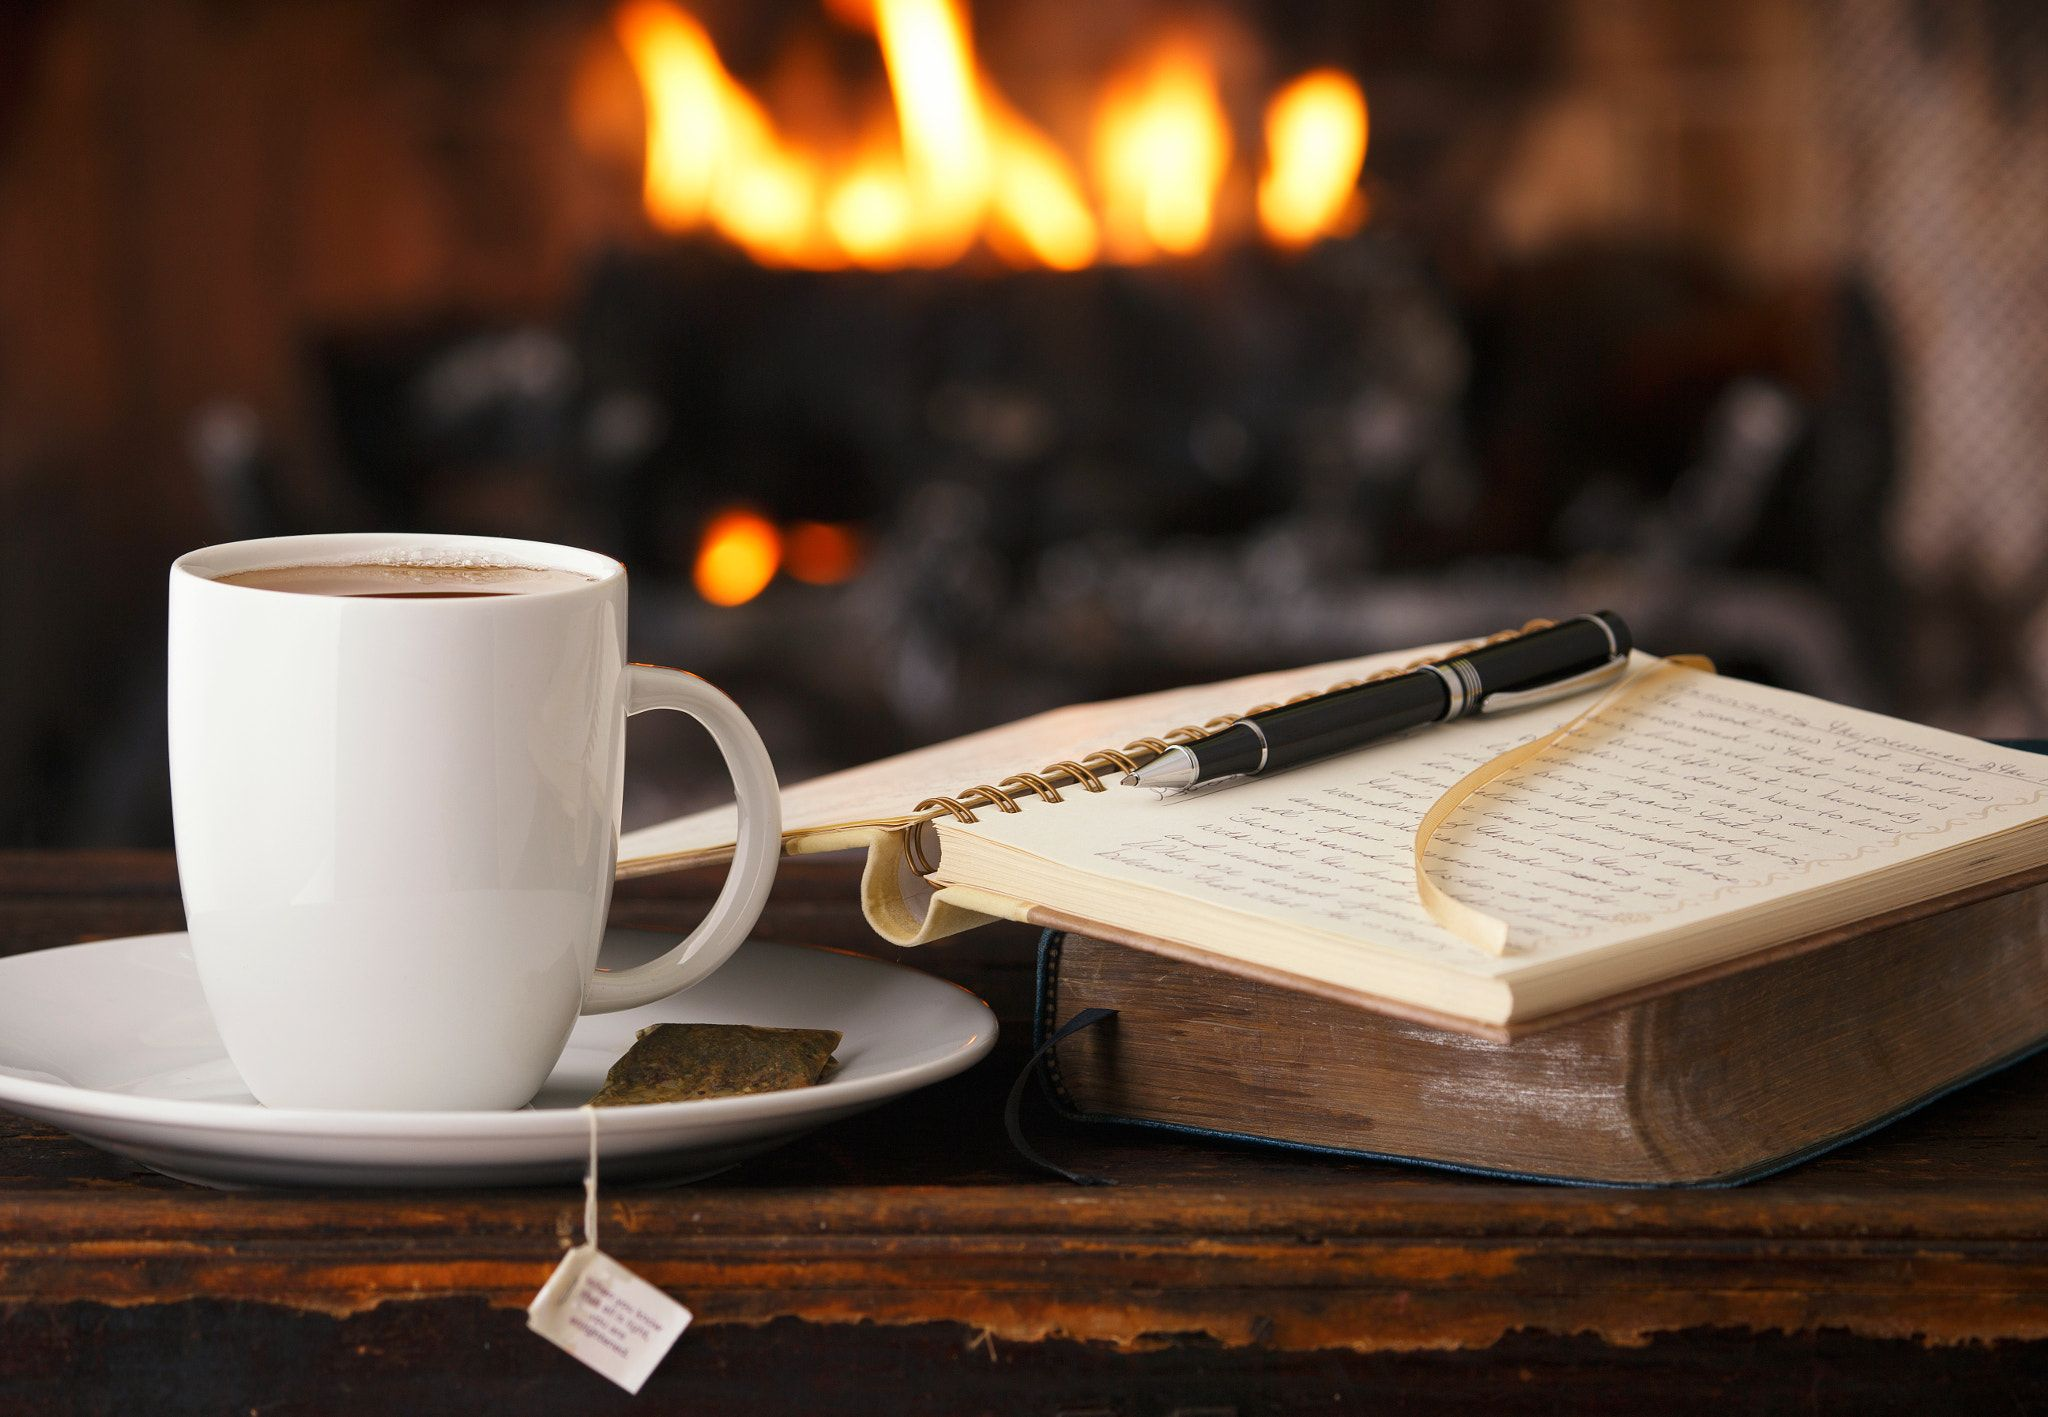 Closeup of a mug of hot chocolate next to an open notebook with a ballpoint pen resting on top, a fireplace burning brightly in the background